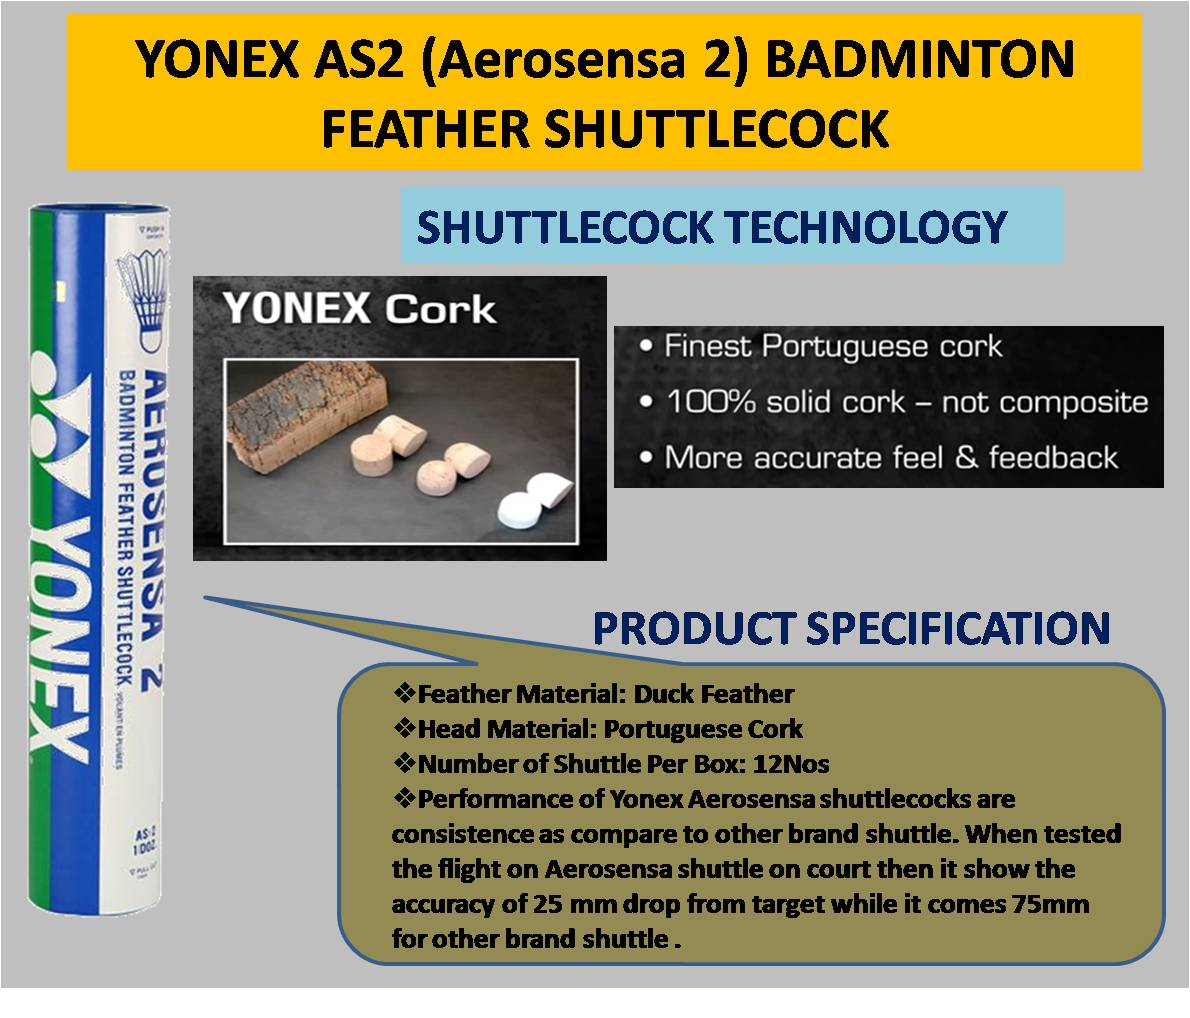 YONEX AS2 BADMINTON FEATHER SHUTTLECOCK